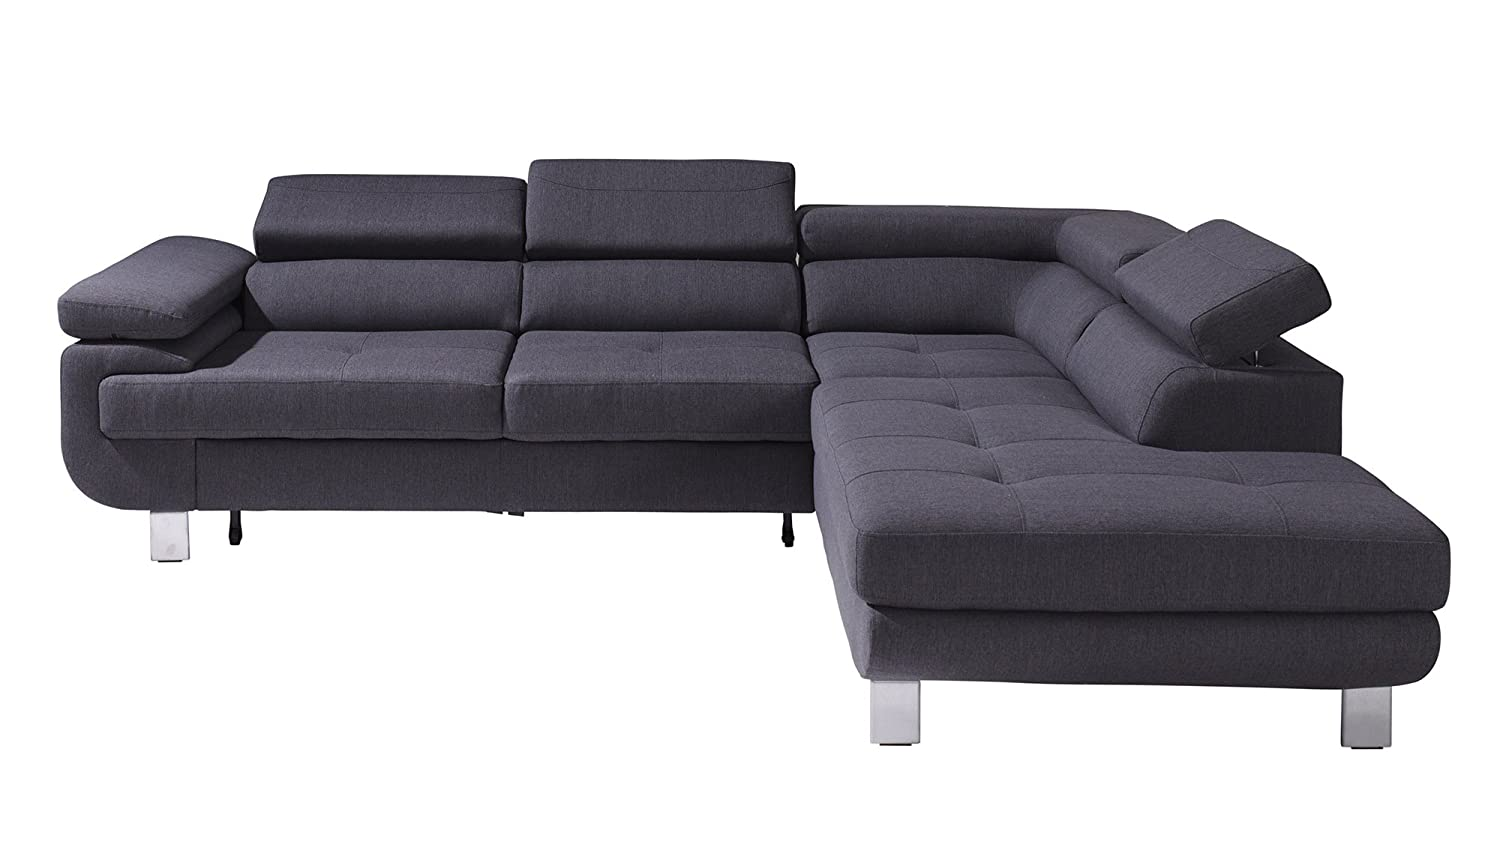 sofa grau stoff cool big sofa grau fbadb with sofa grau stoff perfect affordable bigsofa grau. Black Bedroom Furniture Sets. Home Design Ideas